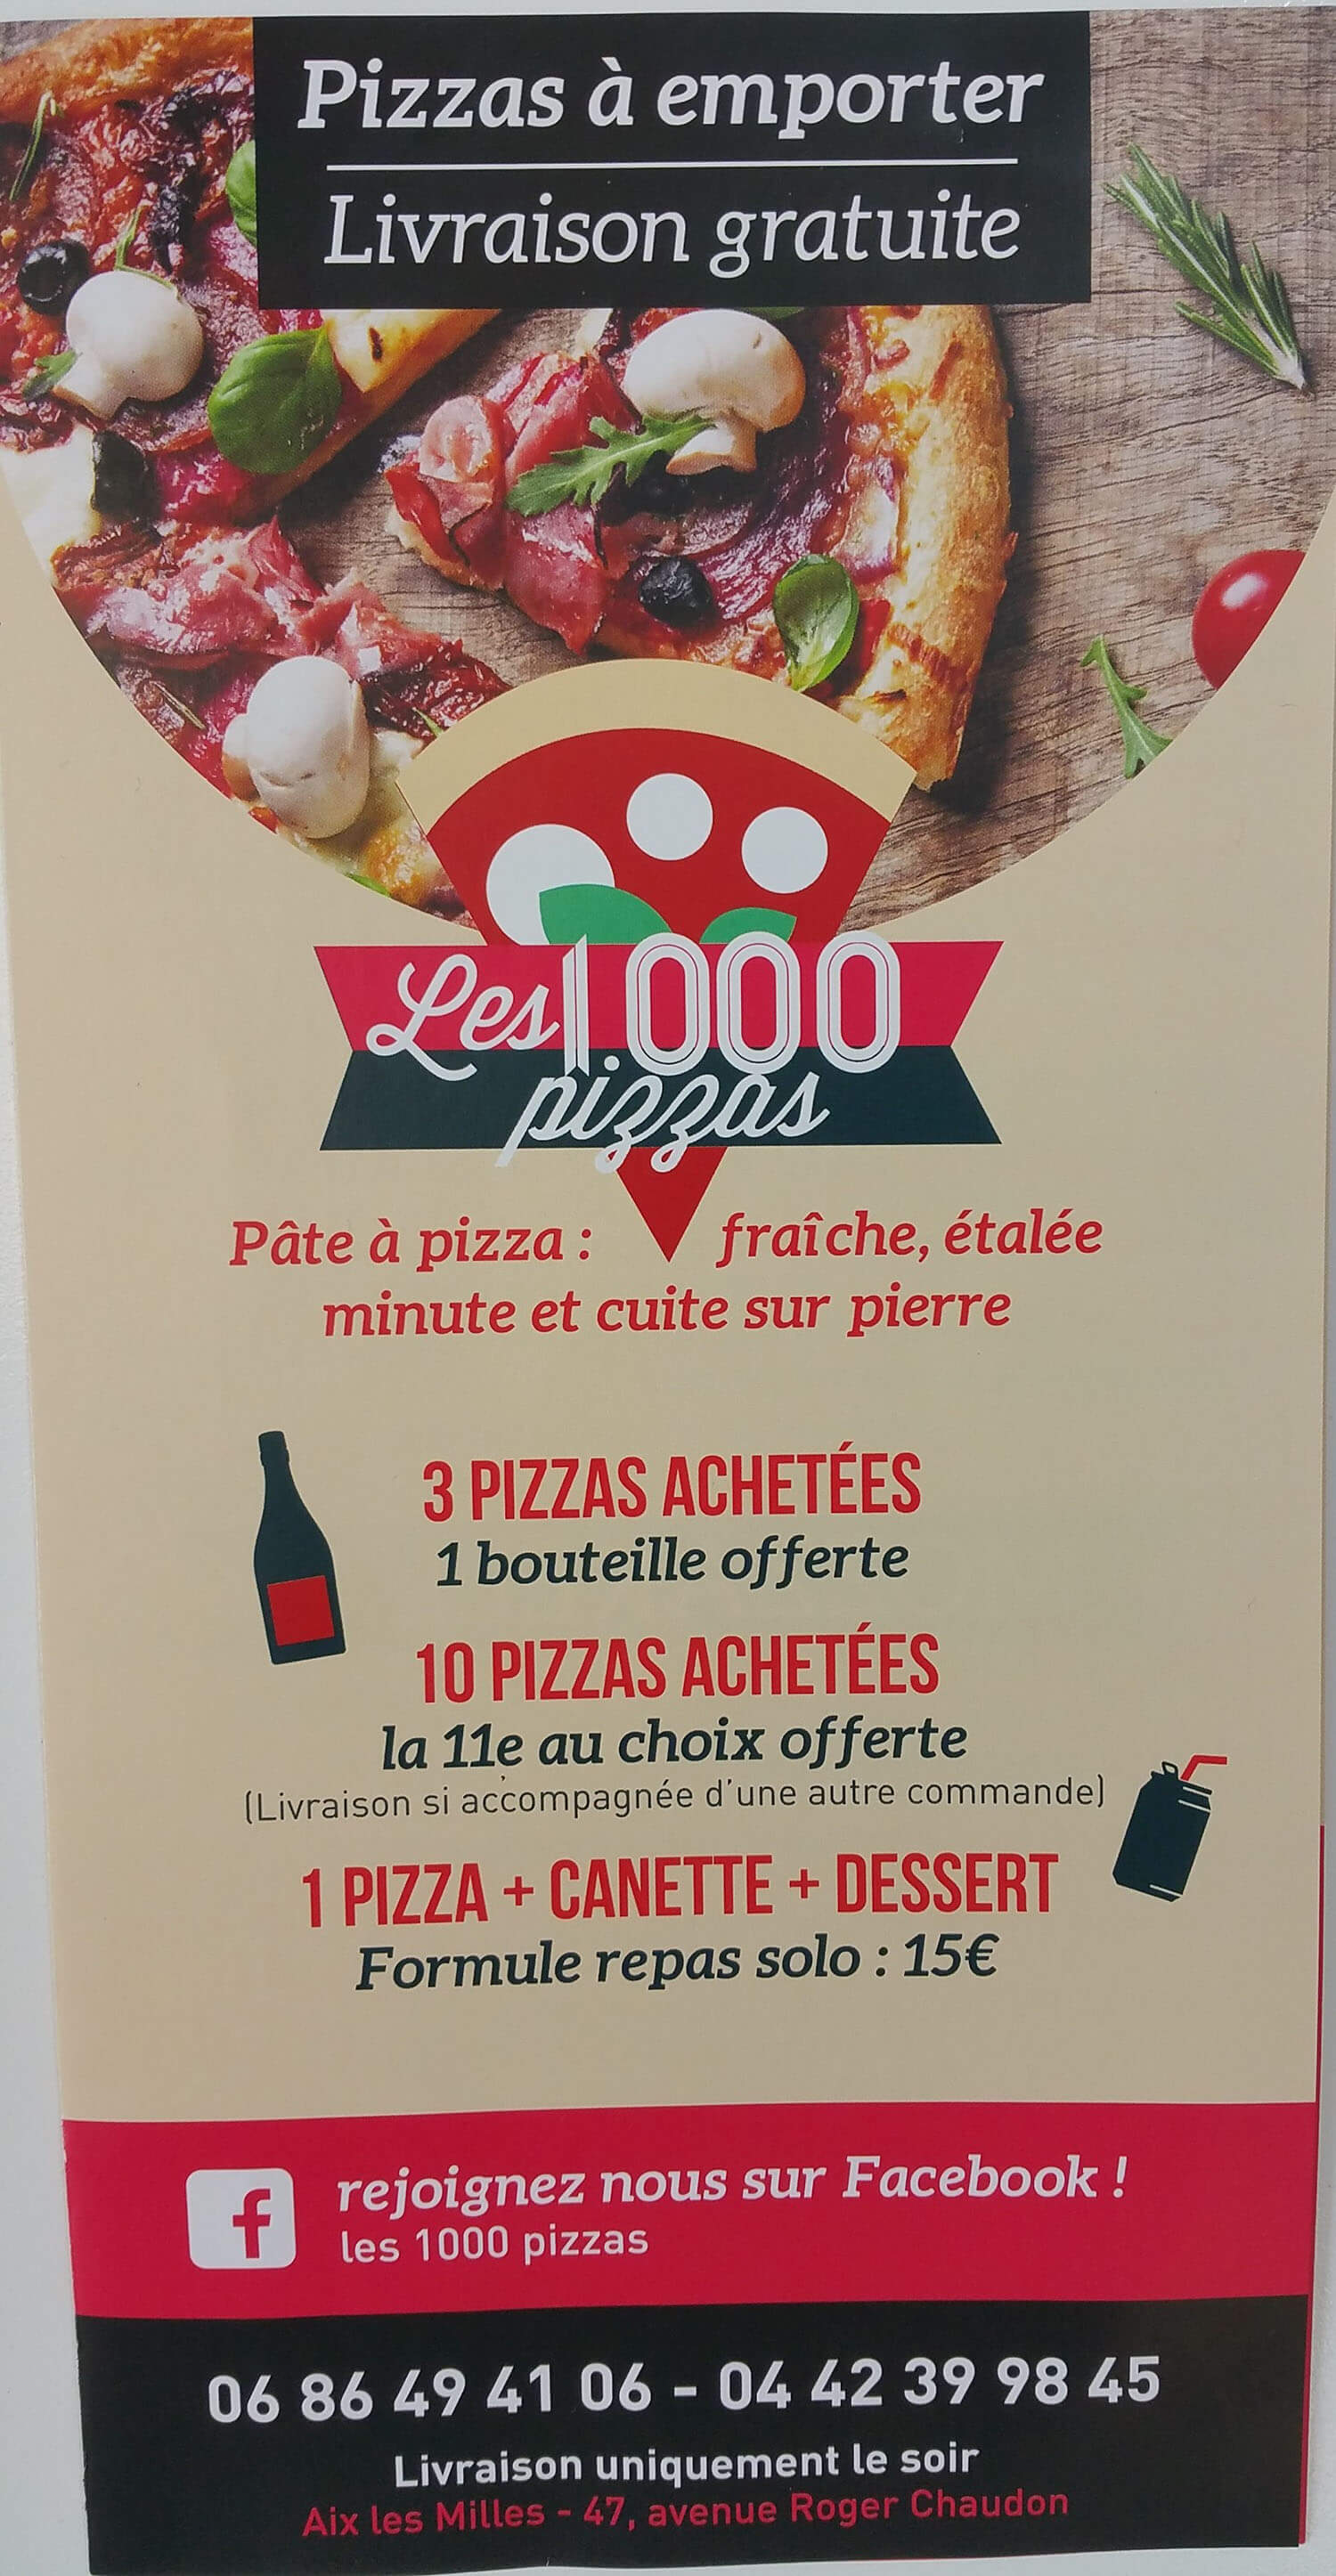 Connu EXEMPLE D'UN FLYER EFFICACE #328 - Mon business à 200% ! MO24